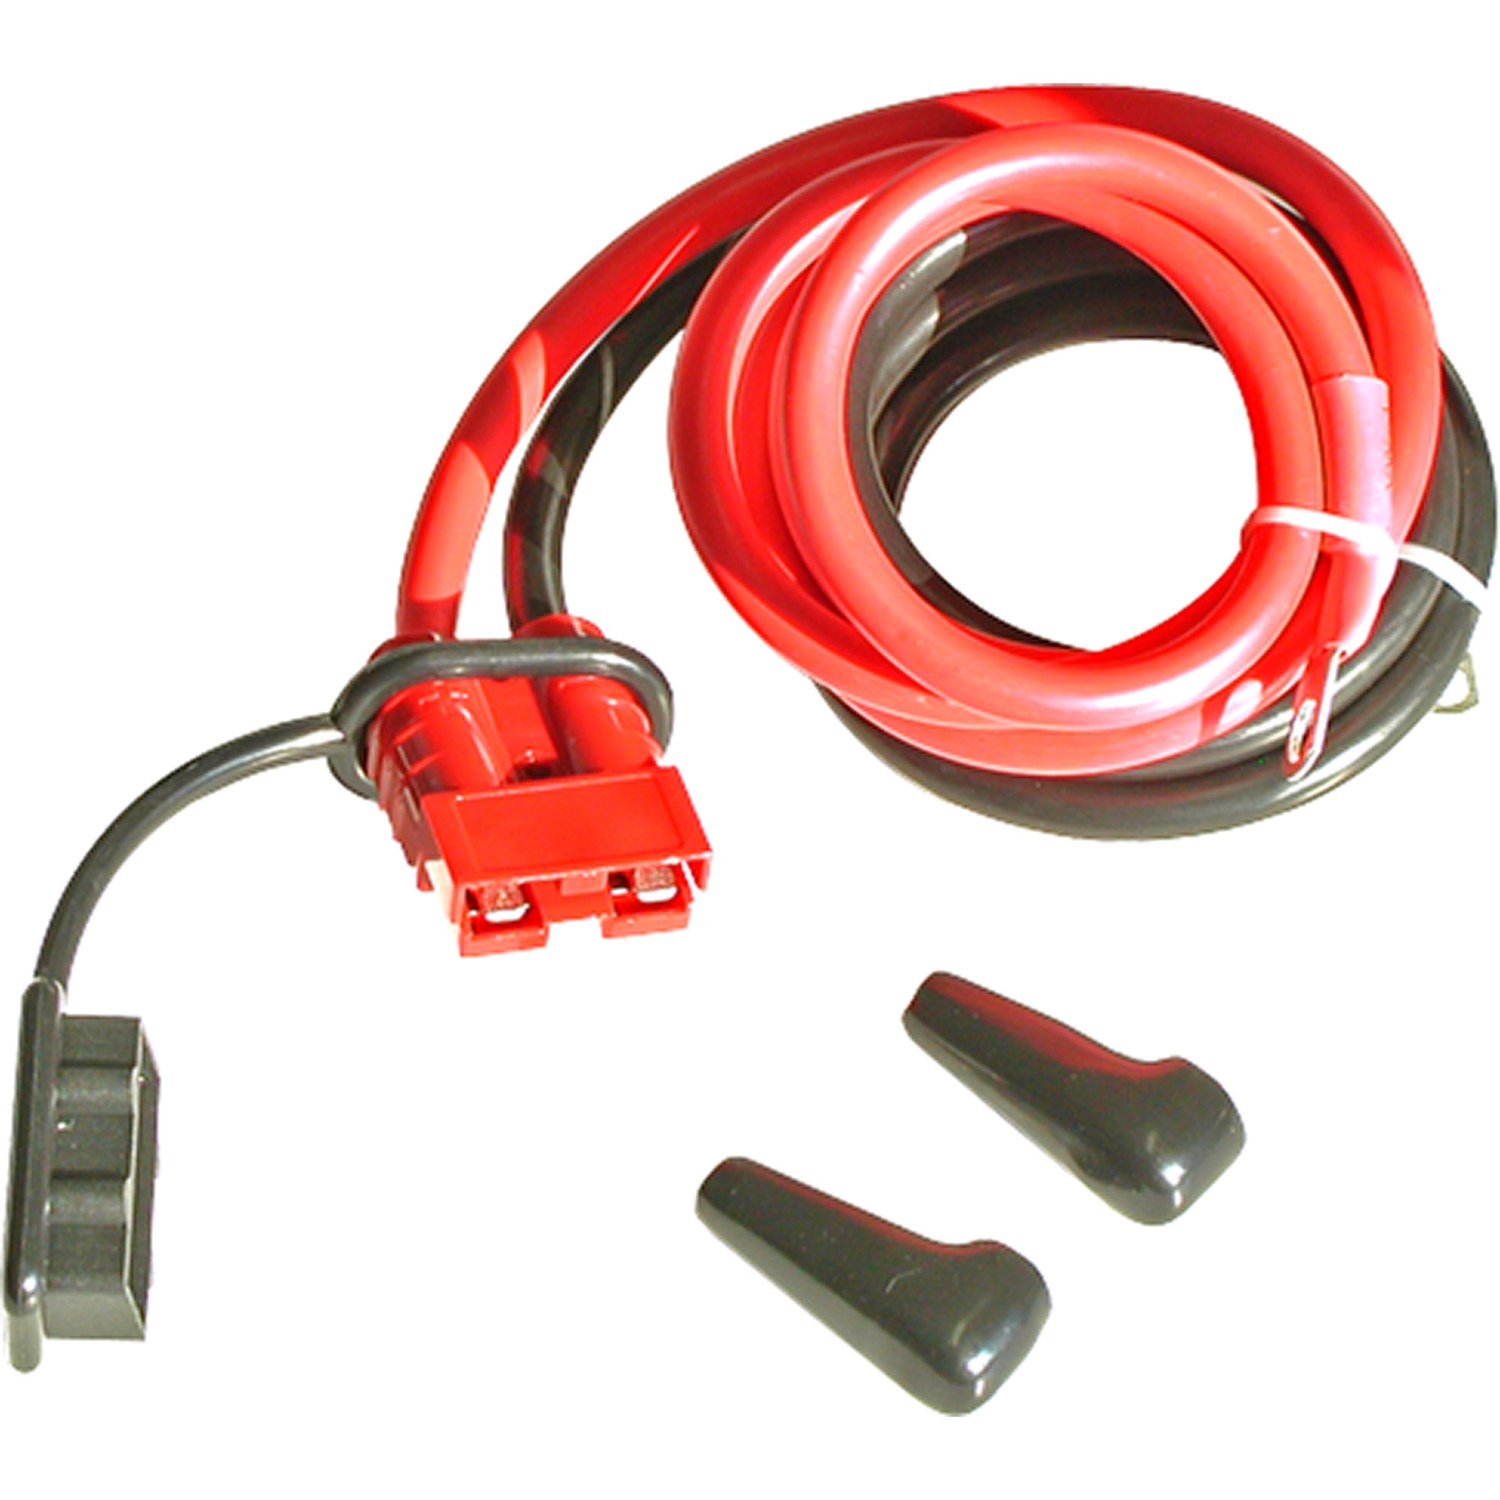 QC-120 Quick Connect Winch End KFI Products